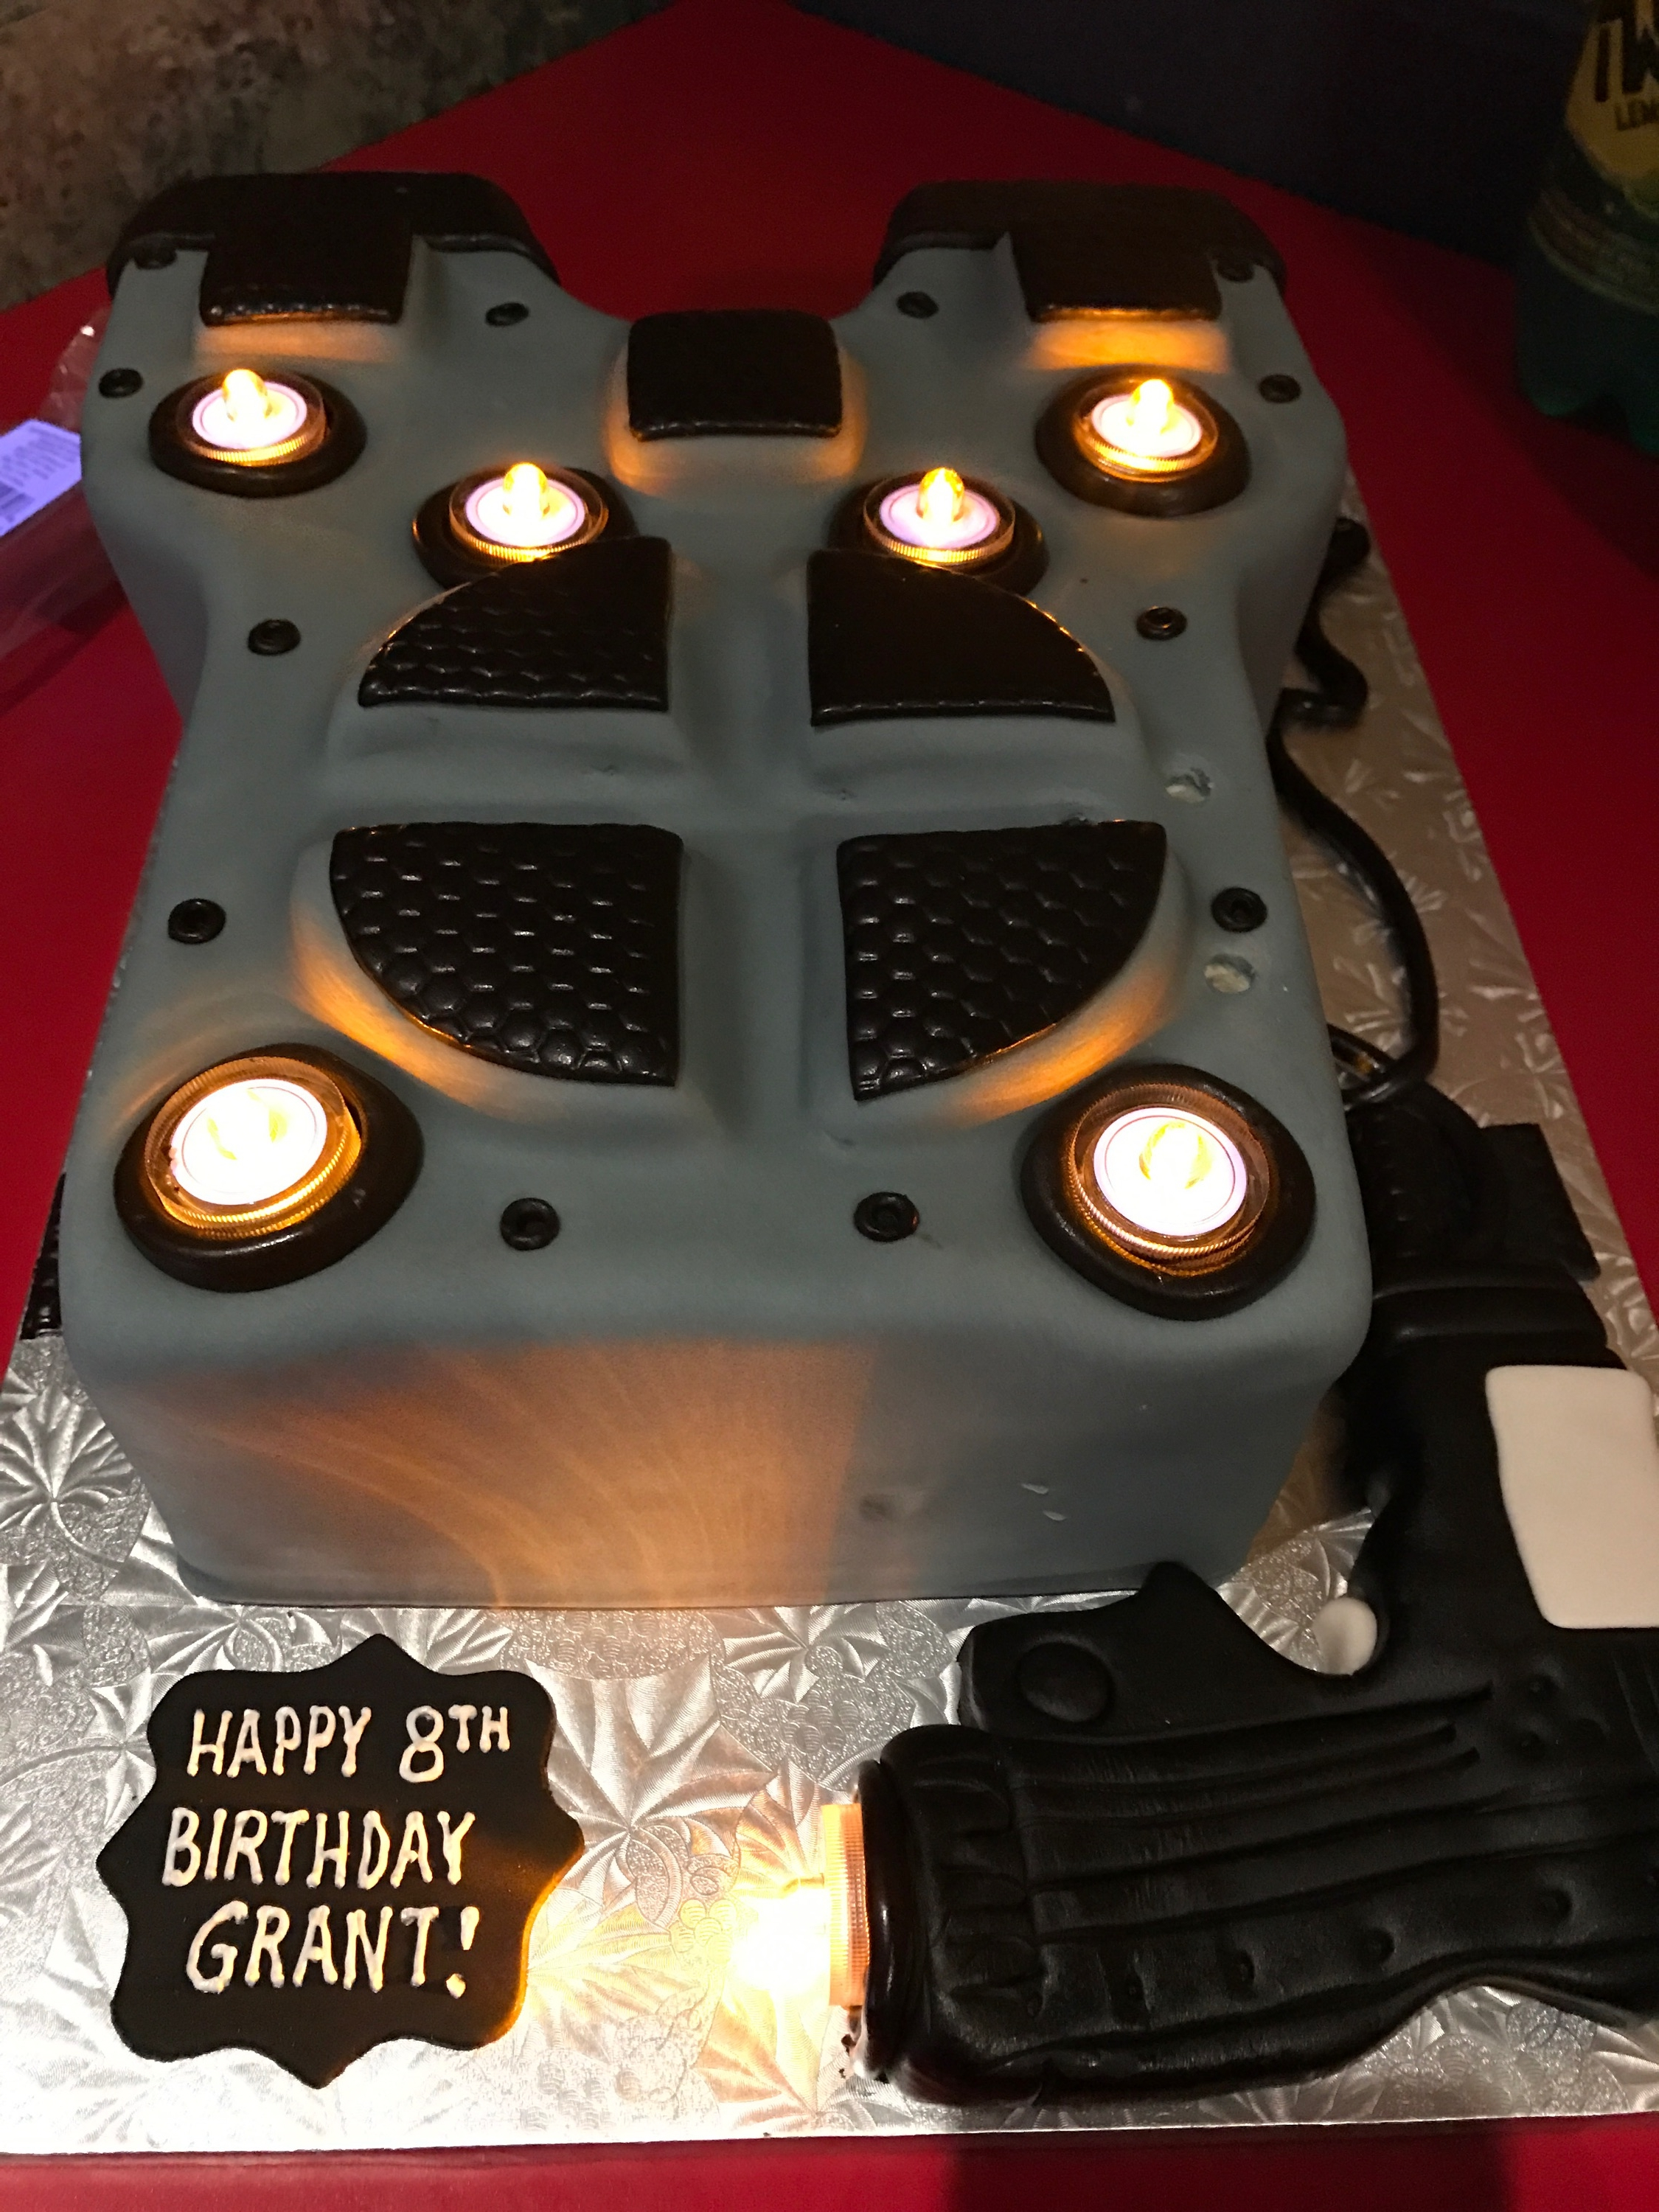 2974, 8th birthday, eighth birthday, laser tag, uniform, gun, gray, black, shirt, carved